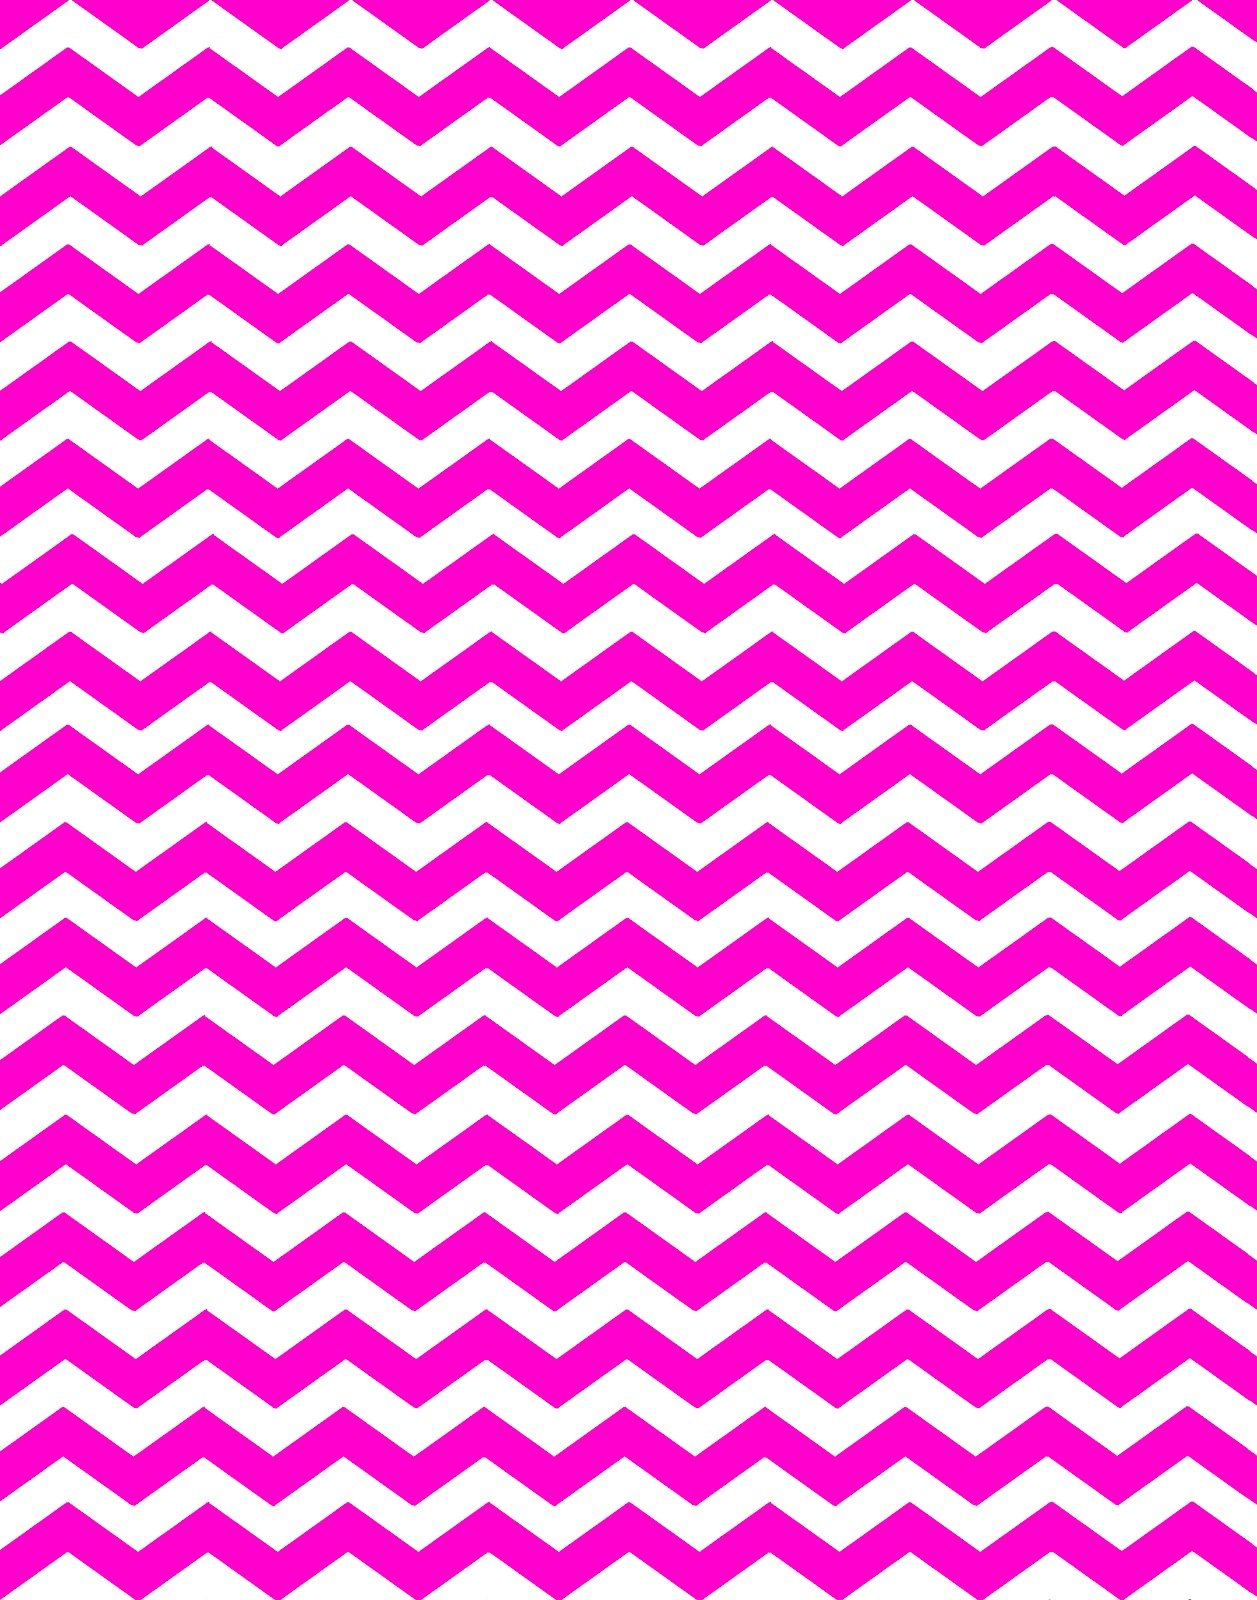 Pink Chevron Wallpaper Wallpapersafari